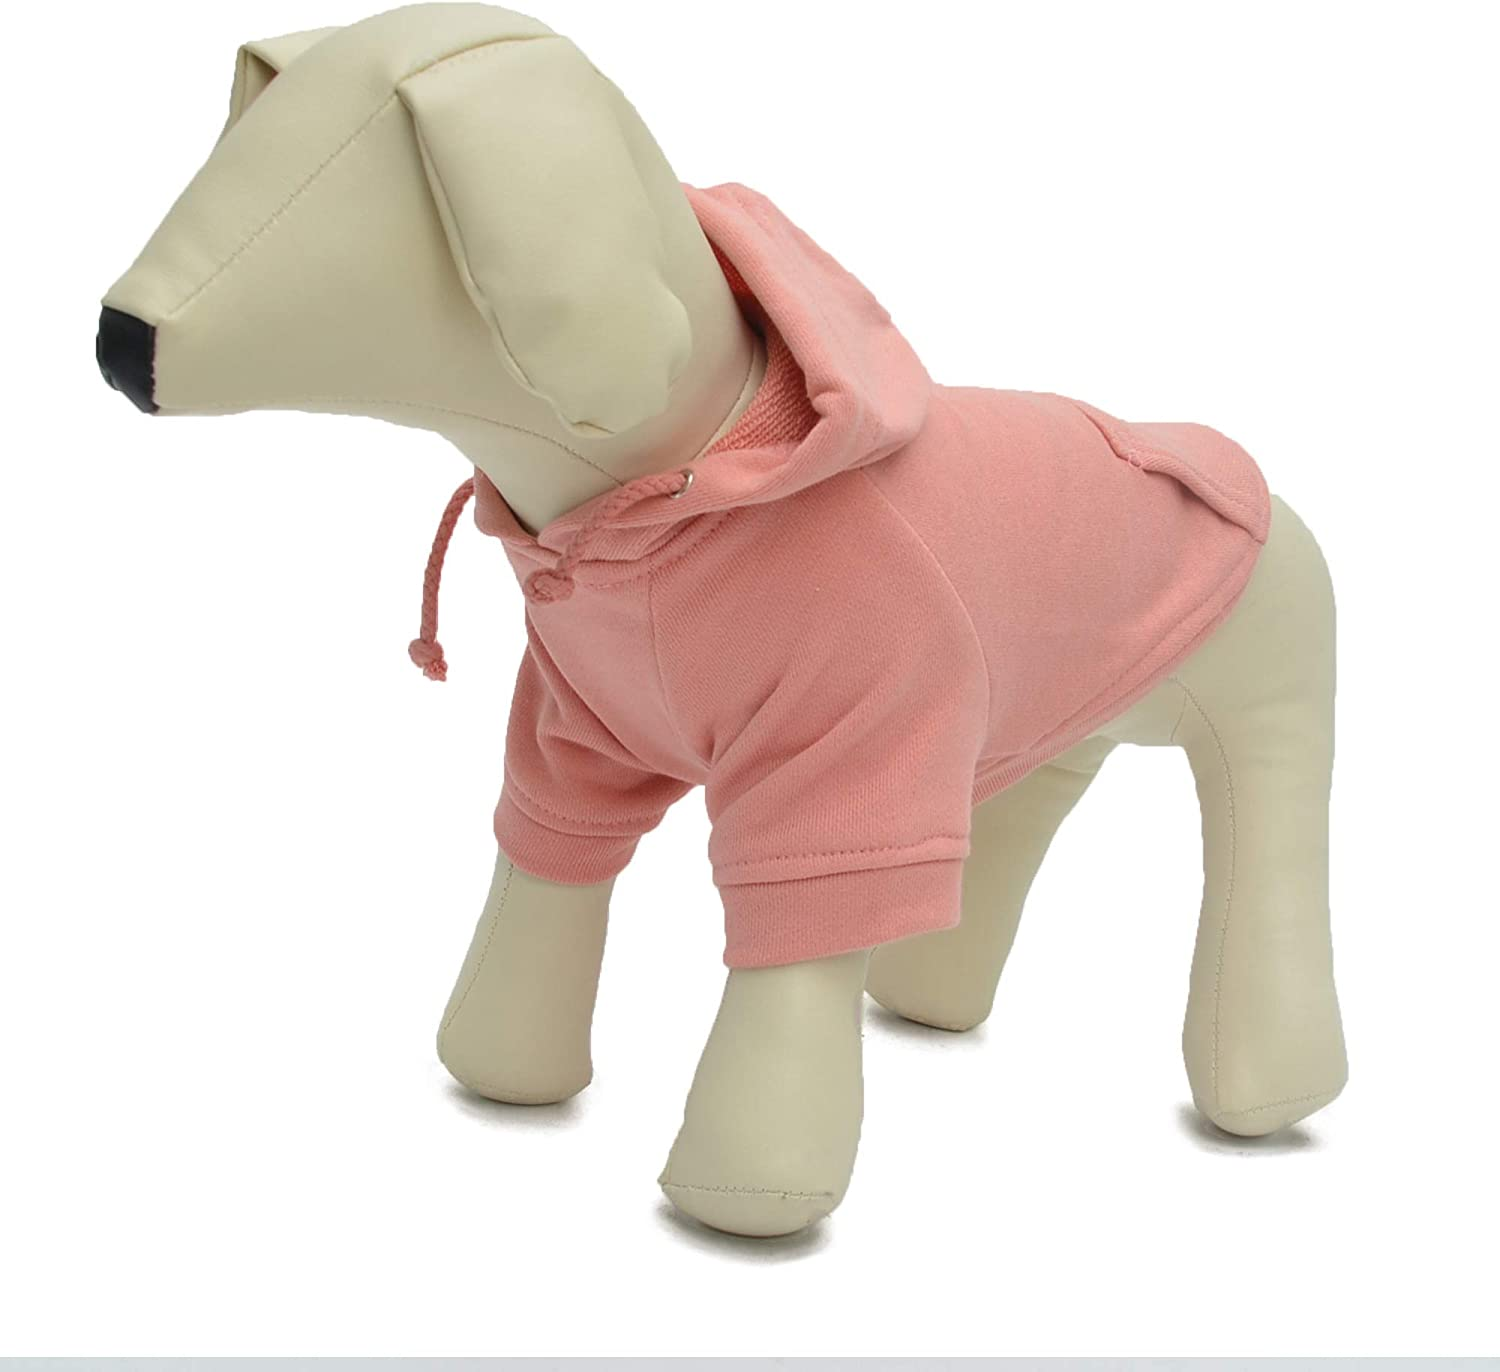 M, Lotus Pink longlongpet Pet Clothing Clothes Dog Coat Hoodies Winter Autumn Sweatshirt For Small Middle Large Size Dogs 11 Colors 100/% Cotton 2018 New